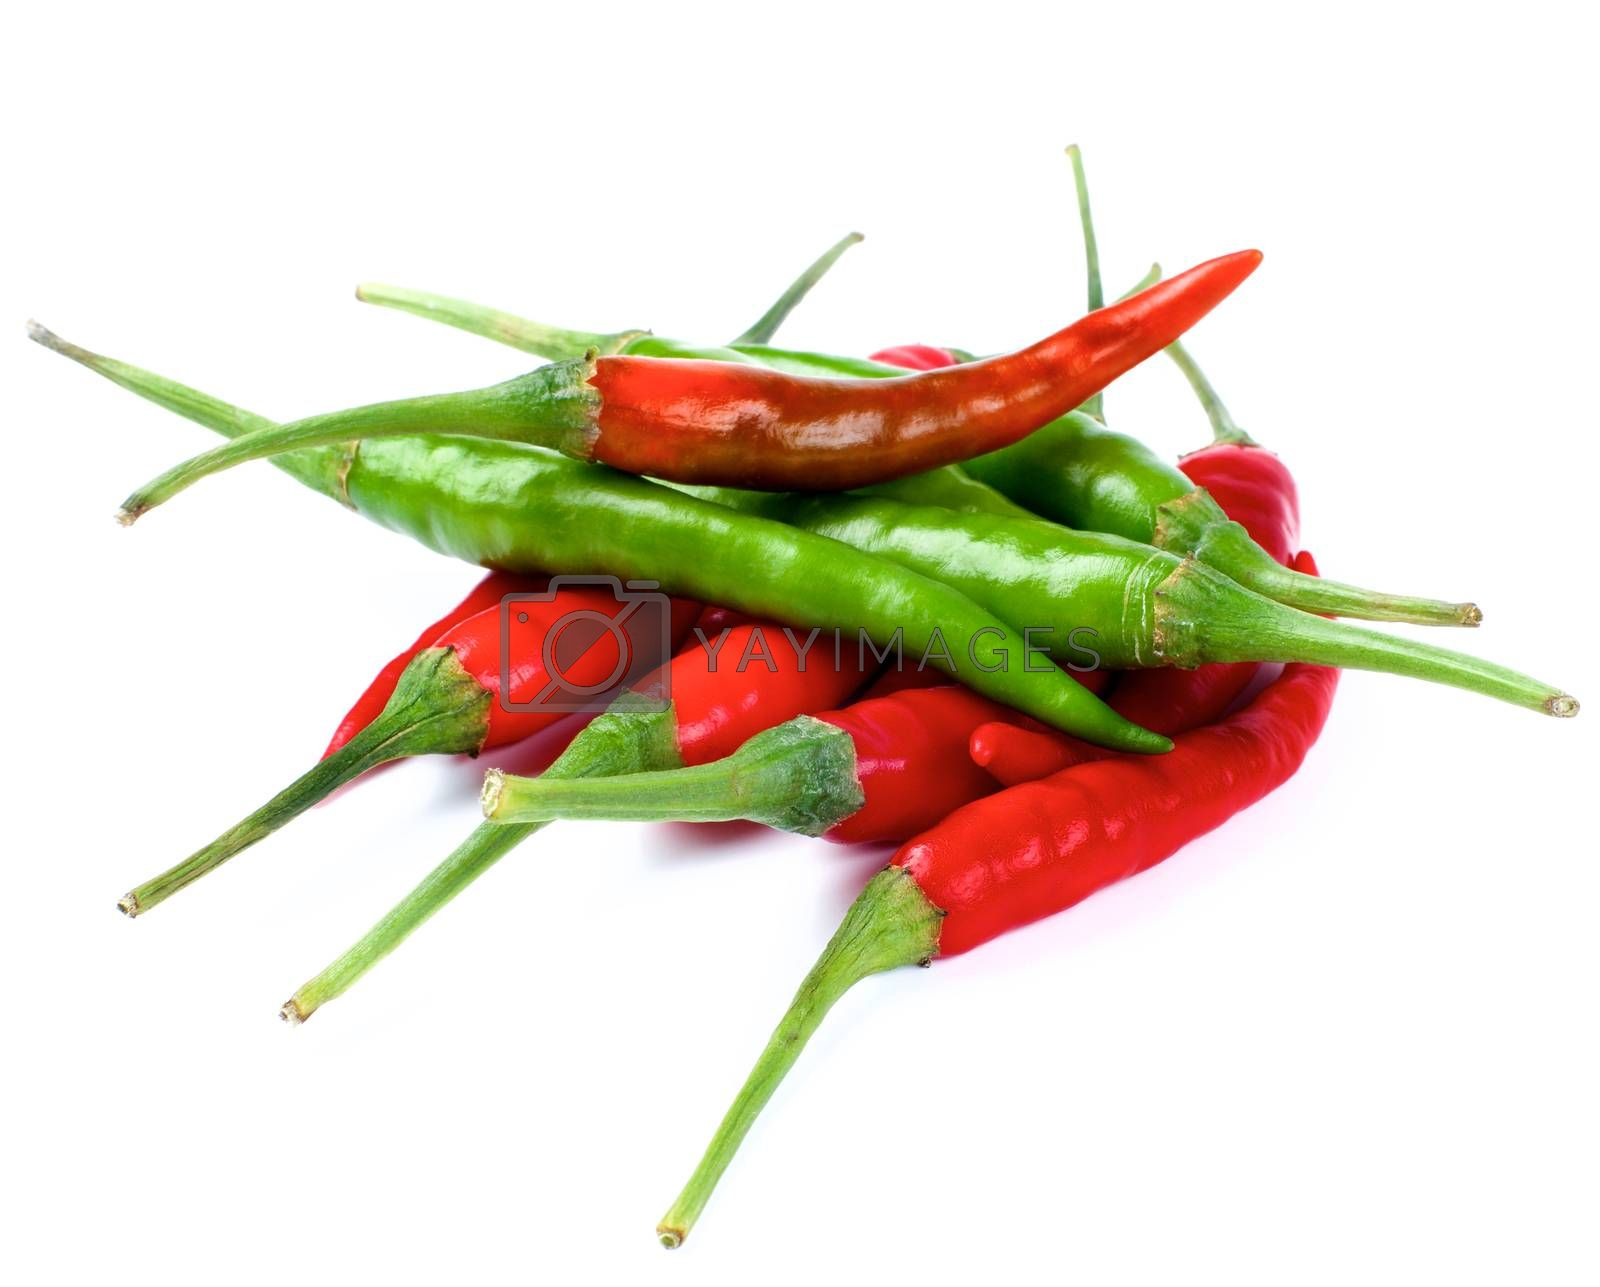 Arrangement of Perfect Red and Green Hot Chili Peppers isolated on White background